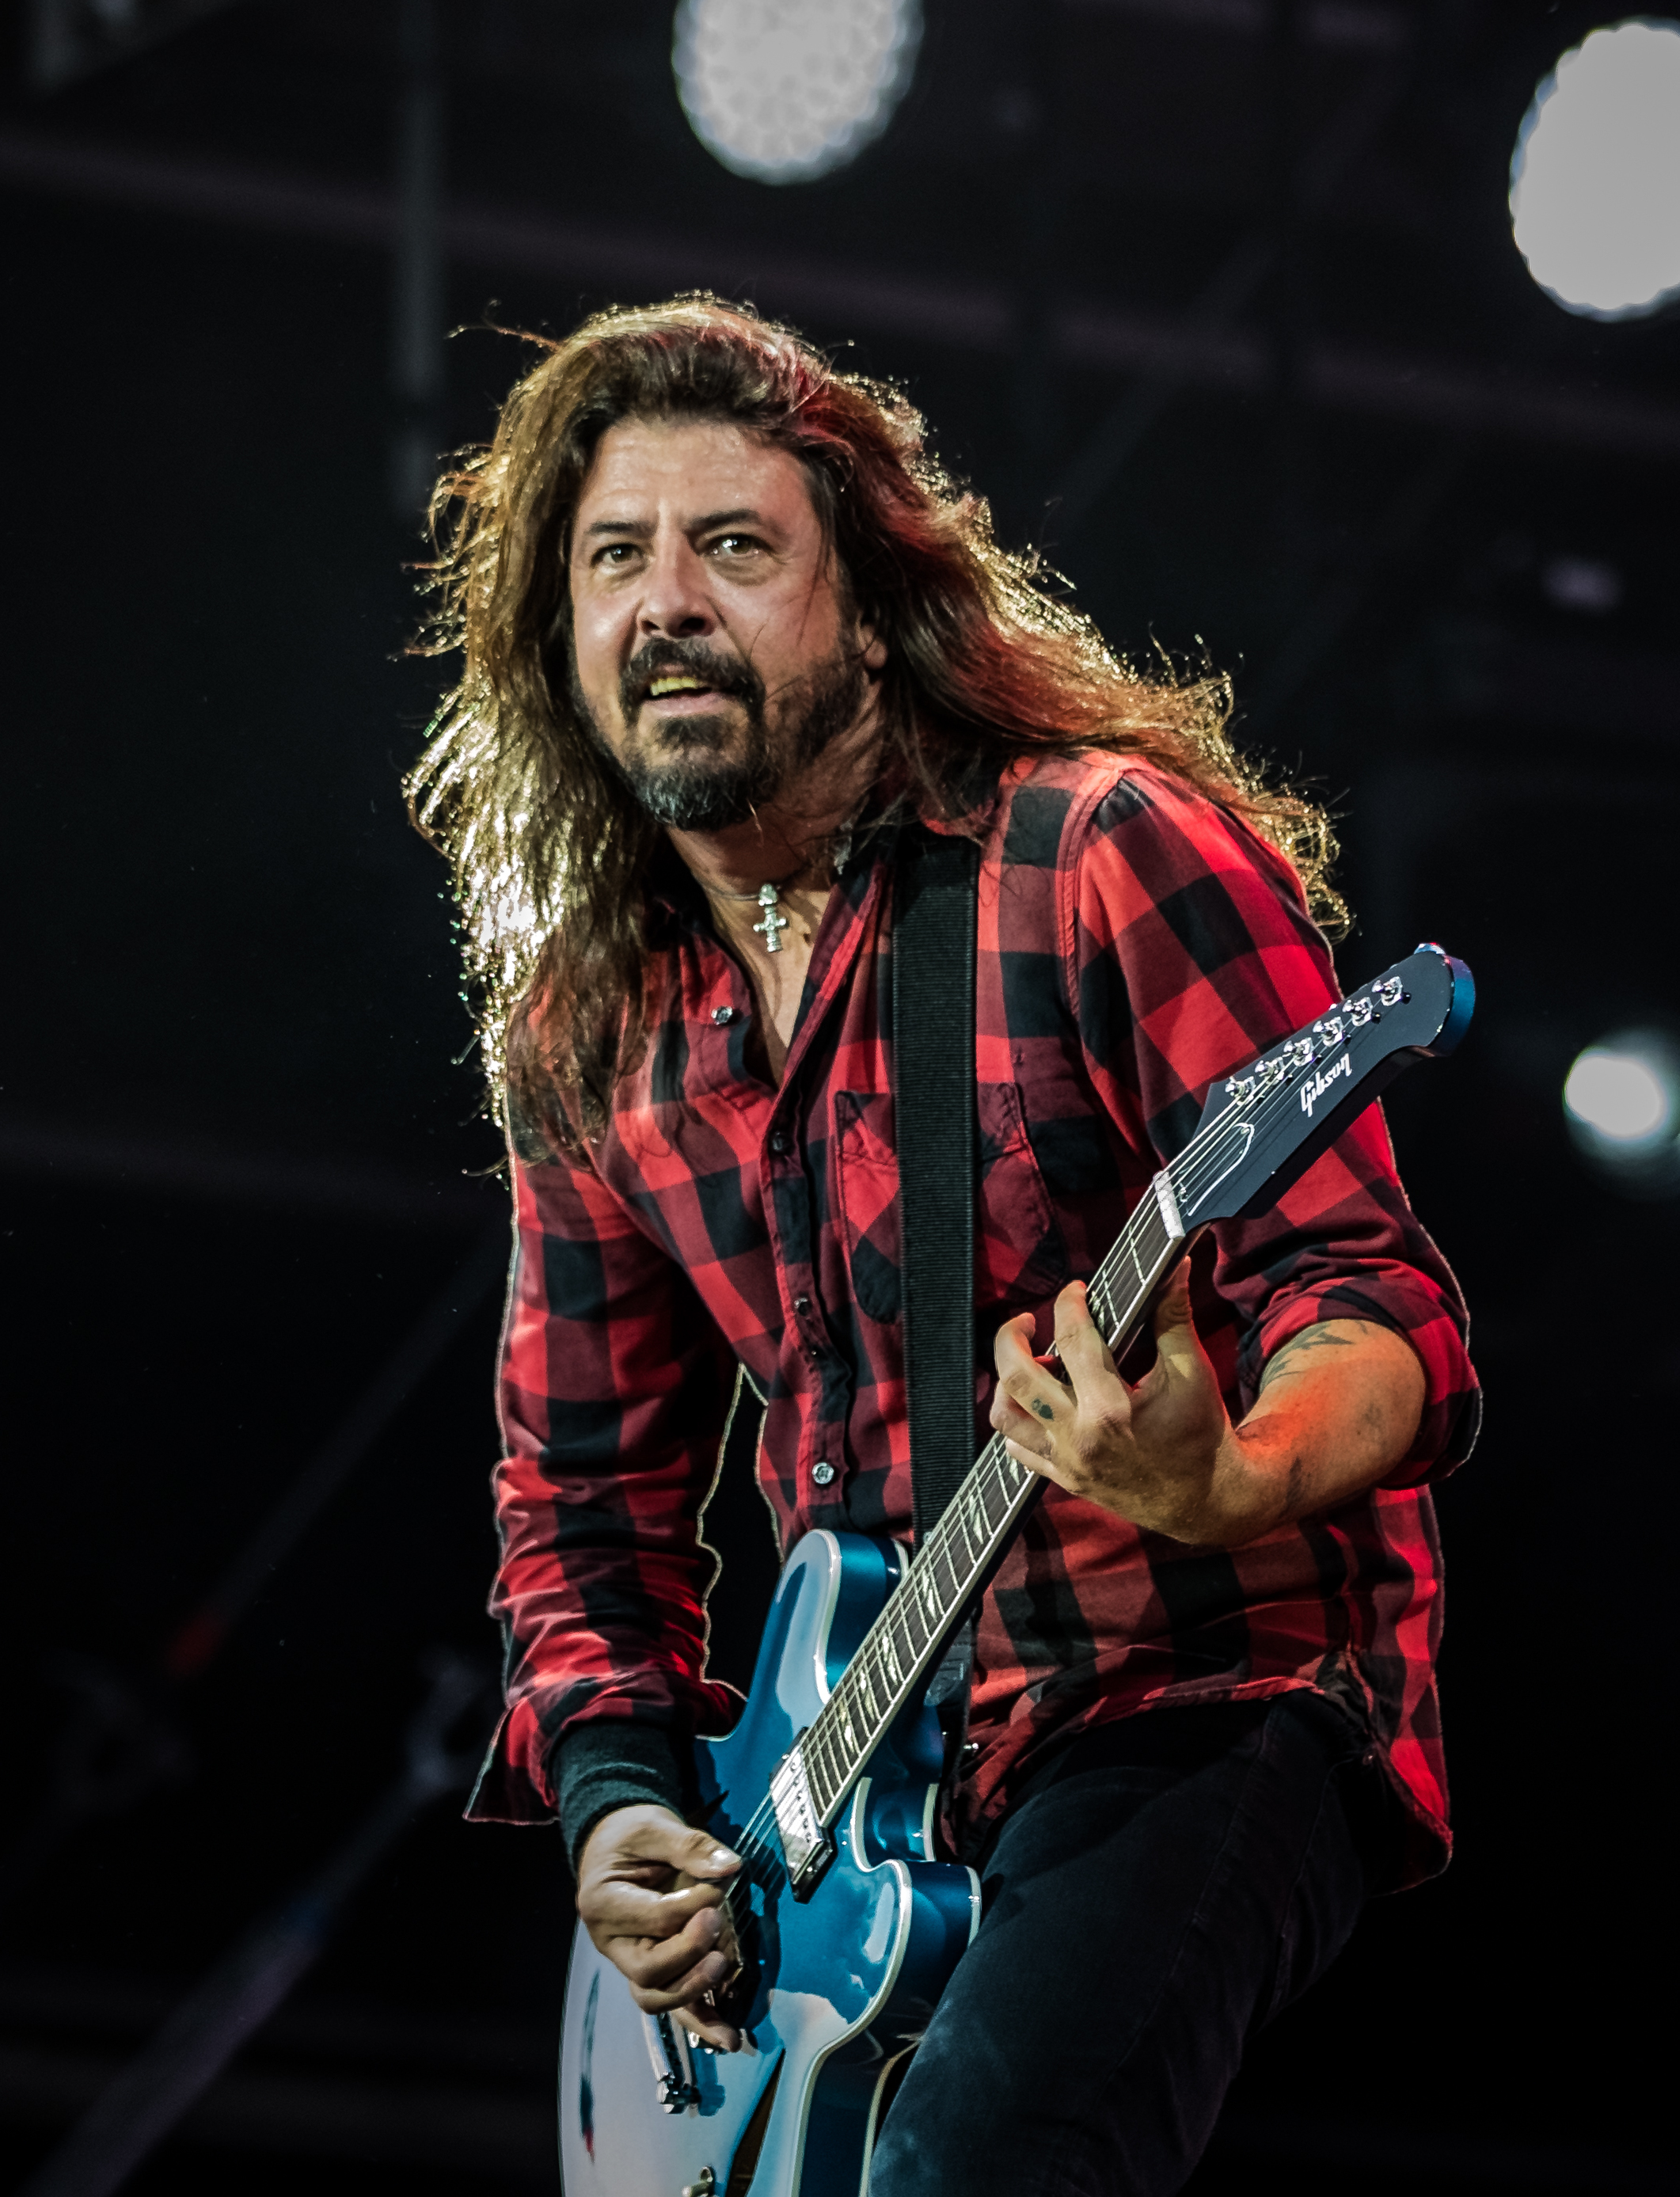 Dave Grohl - Wikipedia